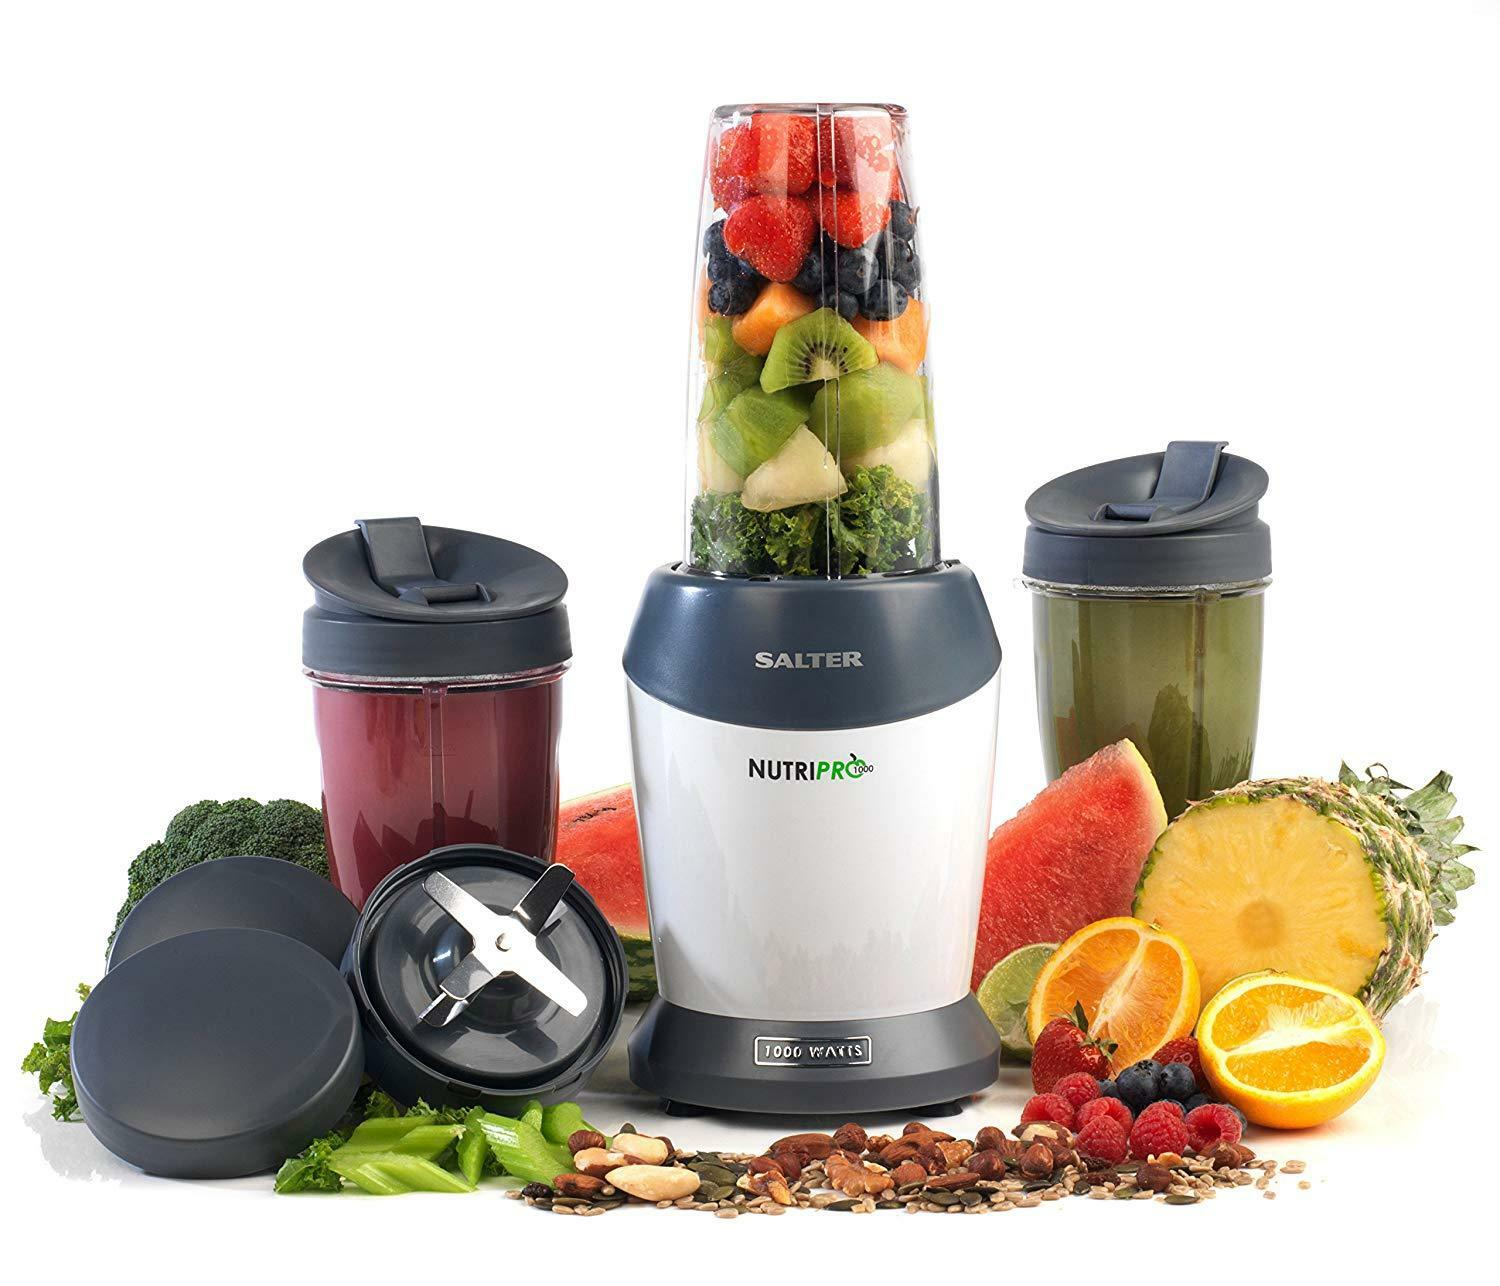 Salter Nutri Pro Super Charged Blender Nutrient Extracteur unique Blanc Nouveau